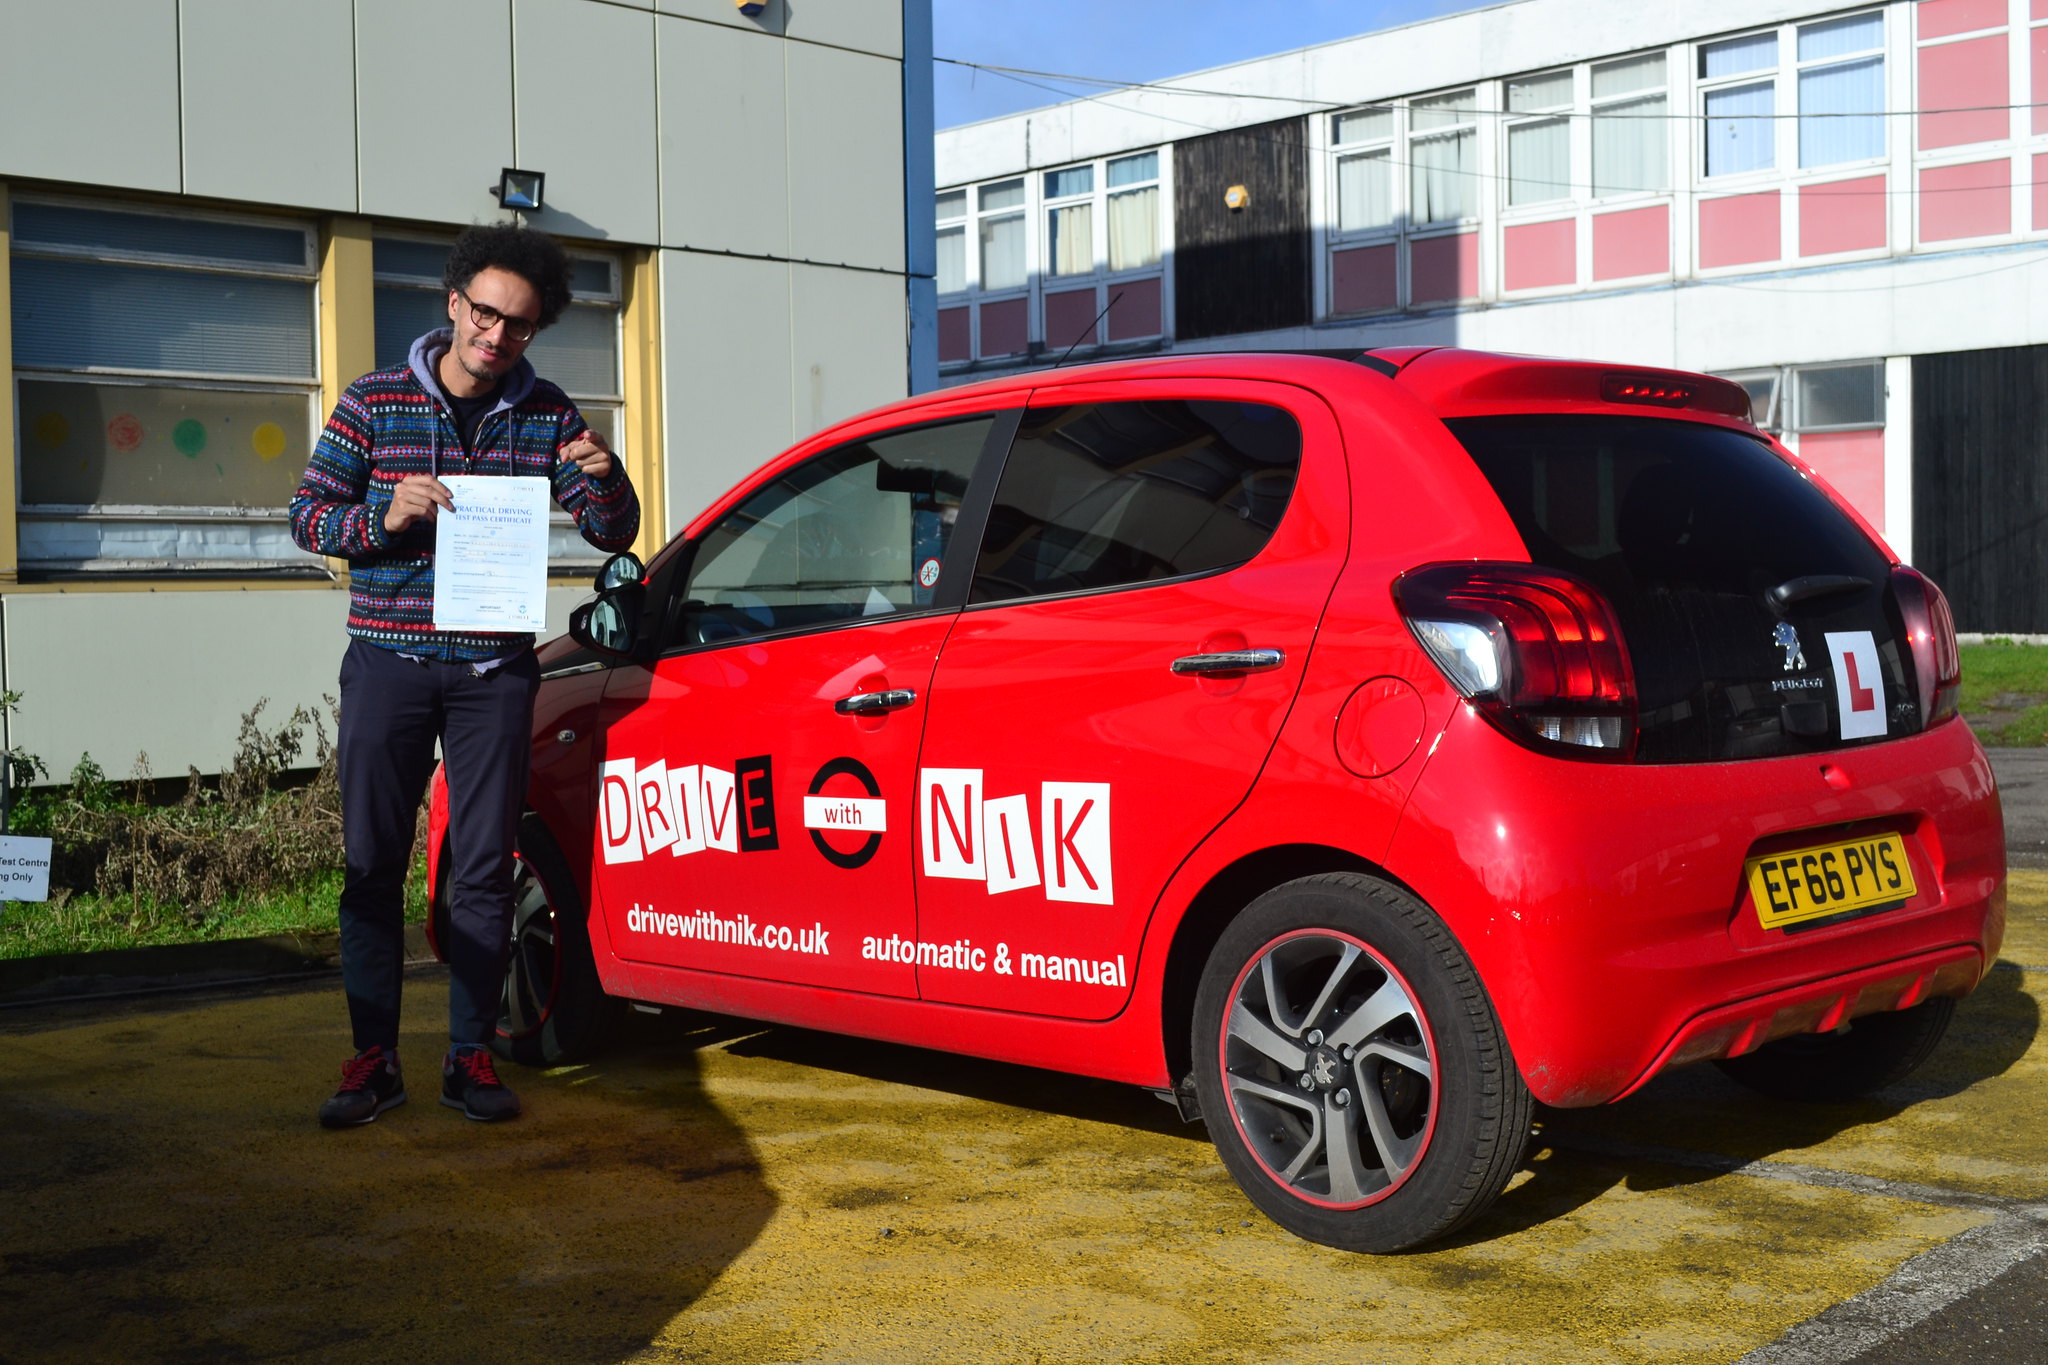 Manual driving lessons Wood Green Youness passed his practical driving test first time with Drive with Nik